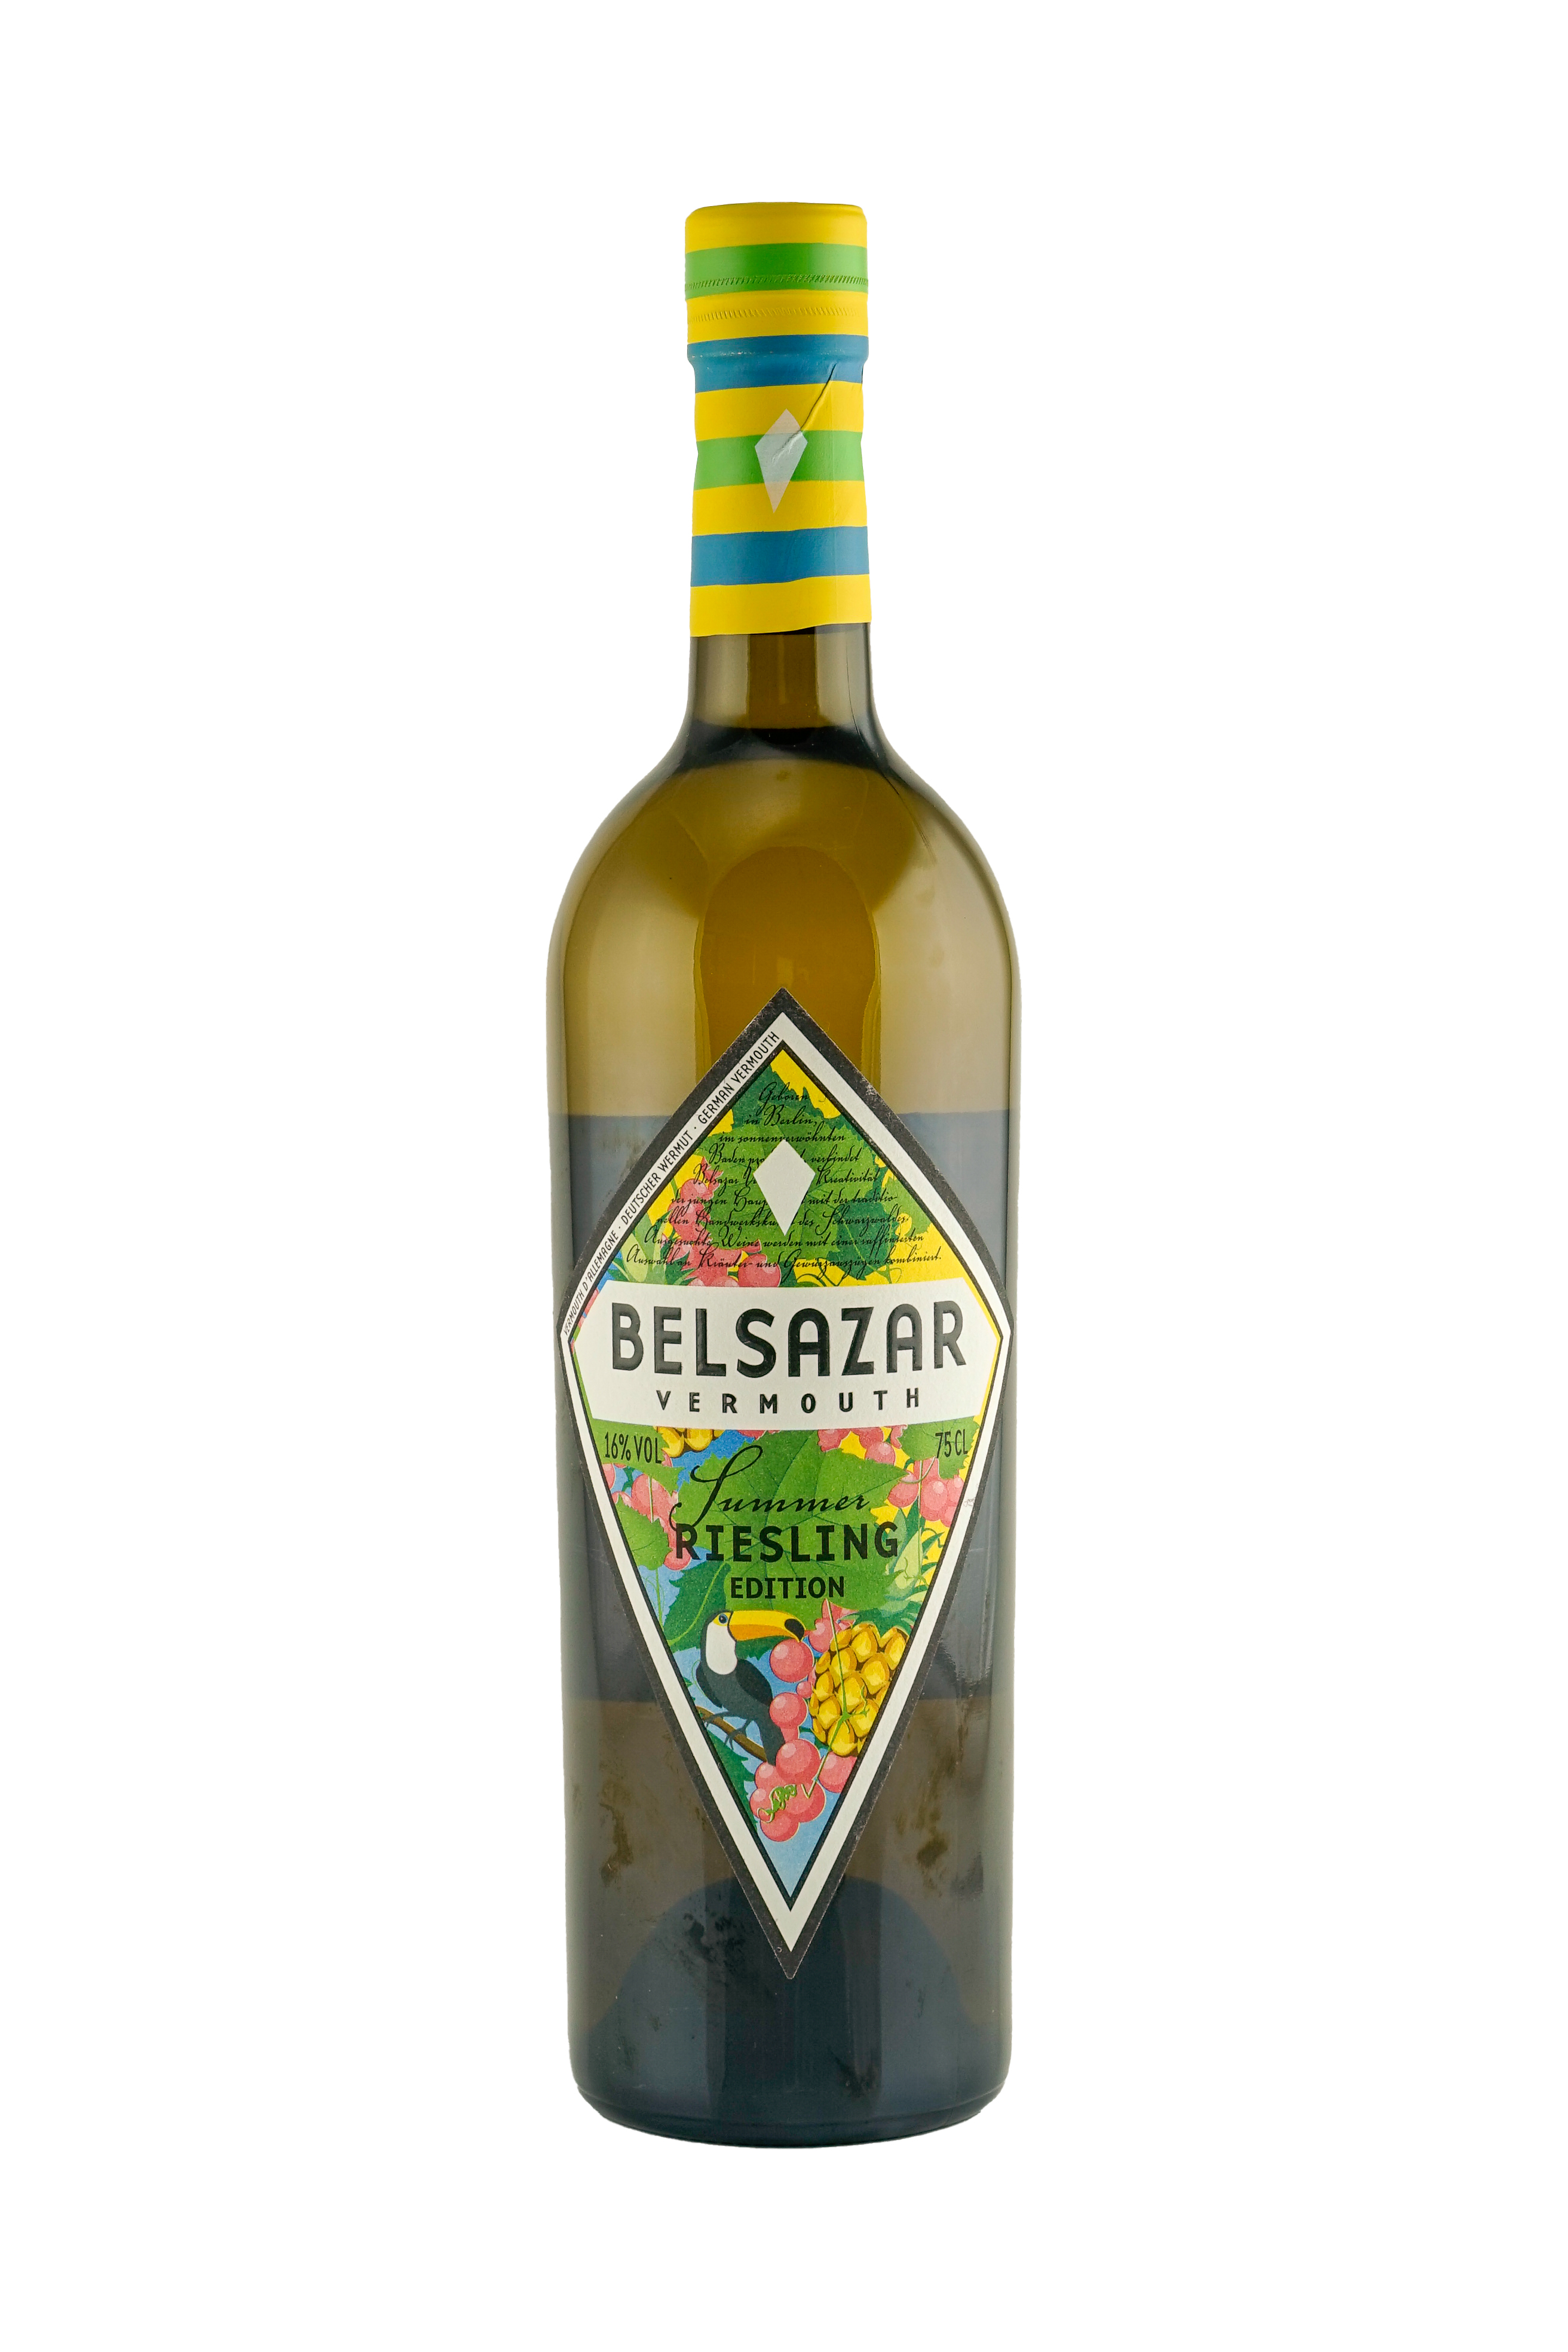 Belsazar Vermouth Summer Riesling Edition